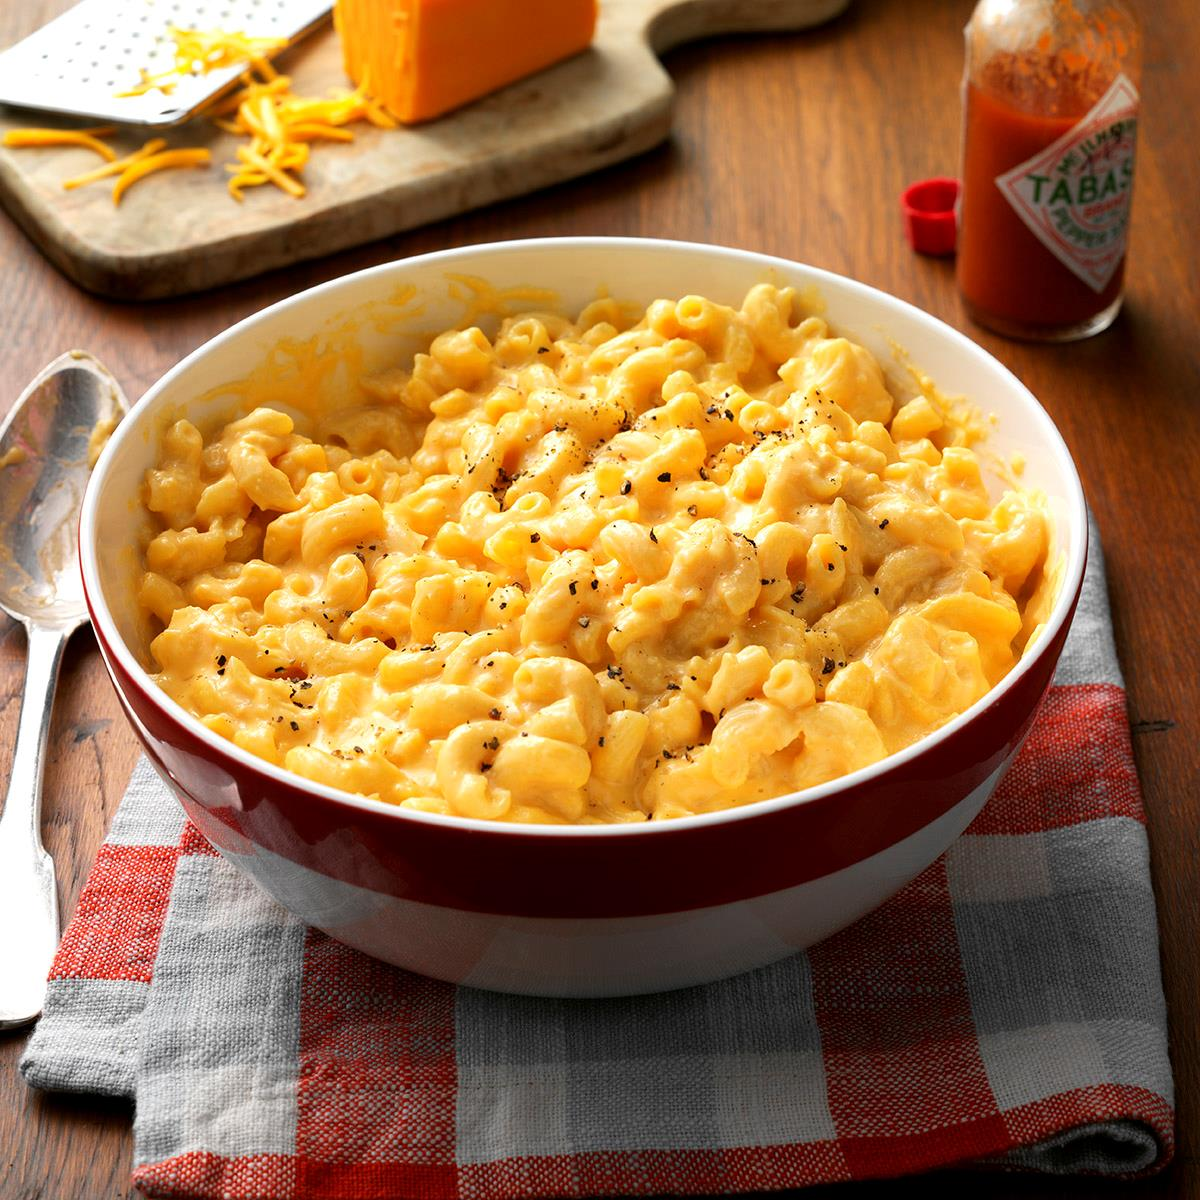 Simple Makeover Slow Cooked Mac N Cheese Exps Hscbz16 33528 B08 02 4b Pops Mac Cheese Ingredients Cheese Price Pops Macaroni nice food Popeyes Mac And Cheese